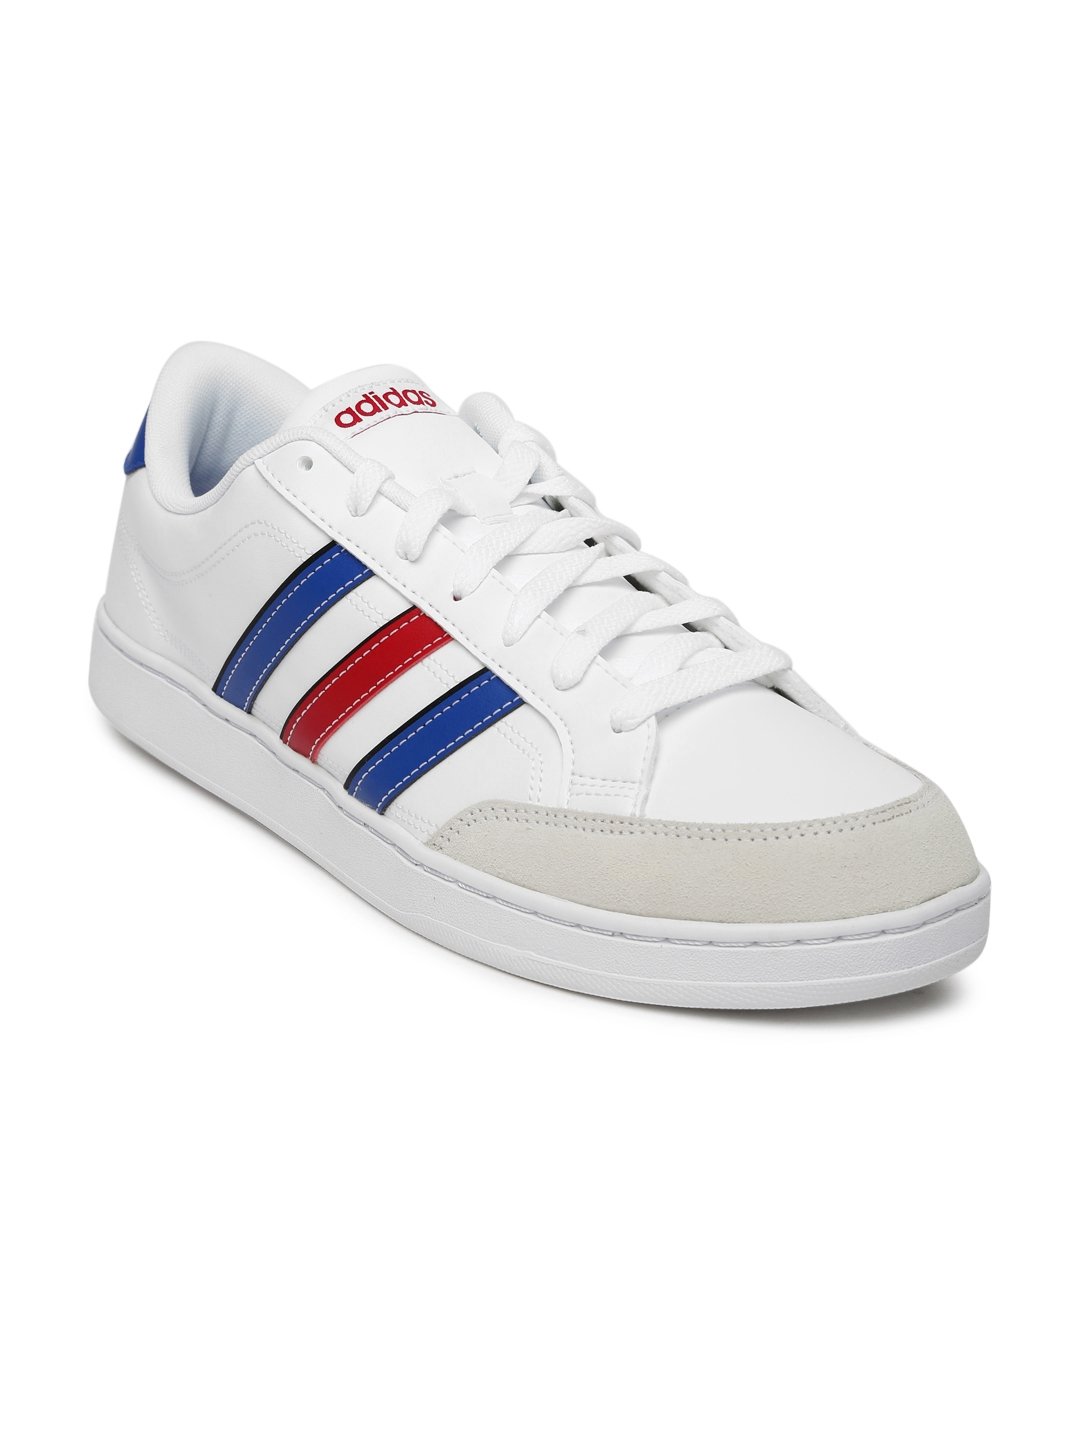 online store bb8cd 154d9 ADIDAS NEO Men White Courtset Sneakers